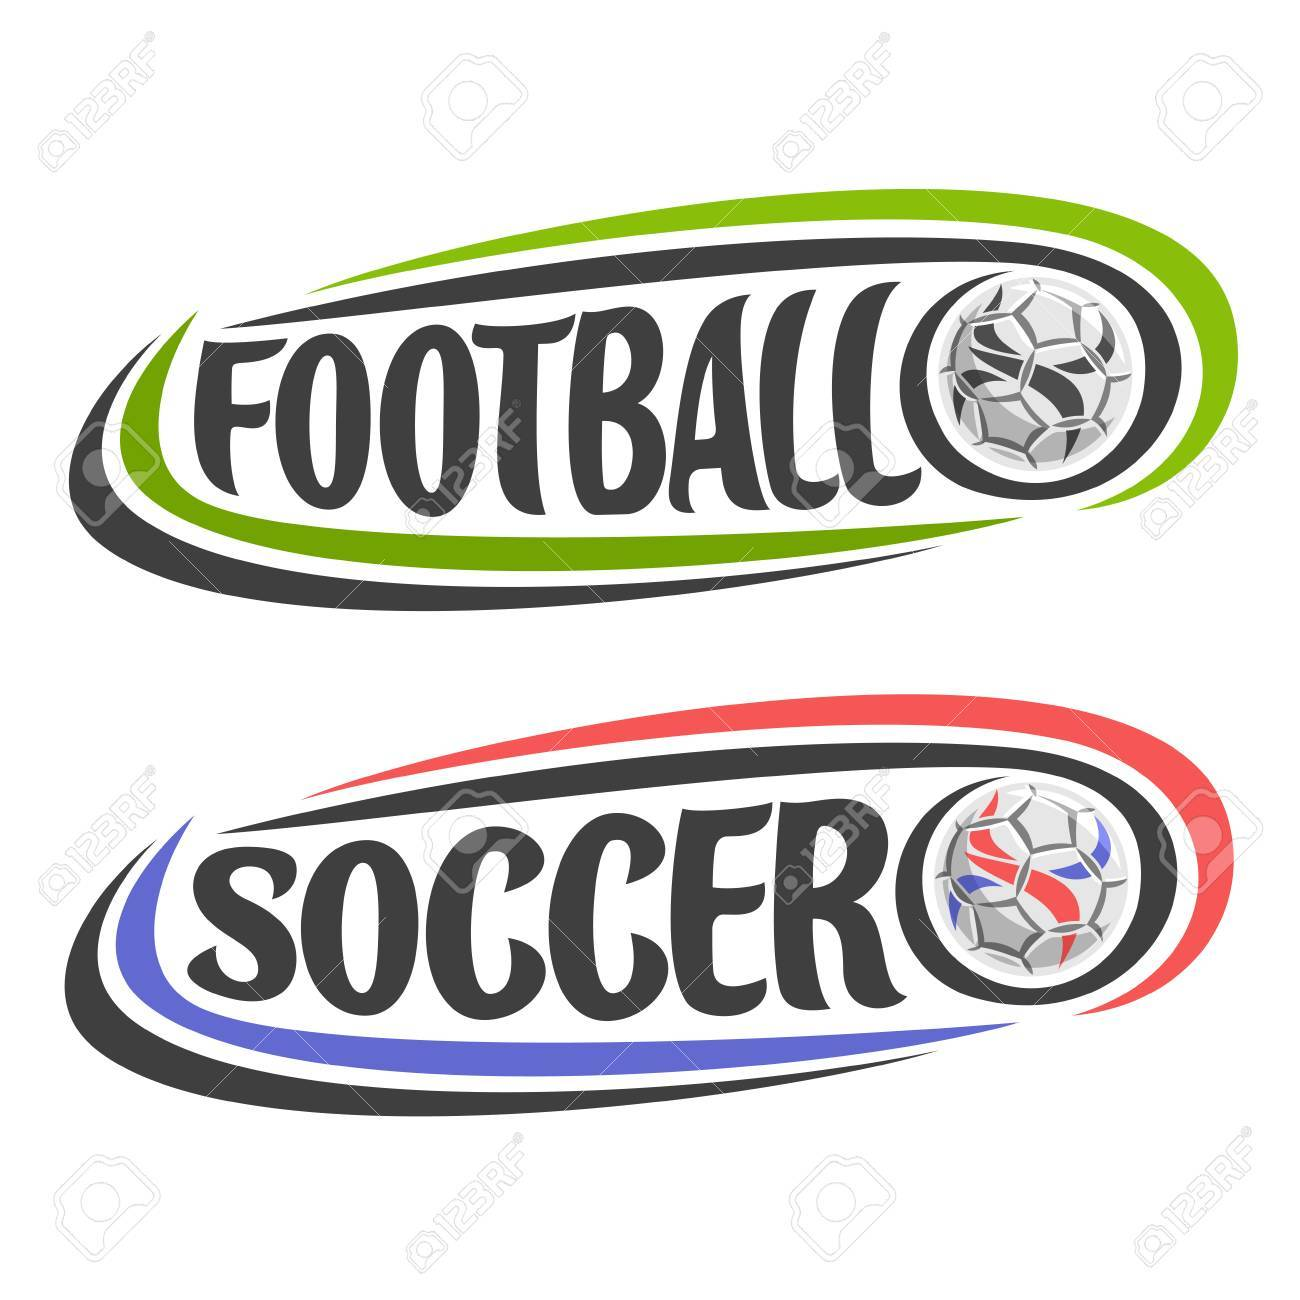 Excellent soccer logo template gallery professional resume symbol for football images symbol and sign ideas buycottarizona